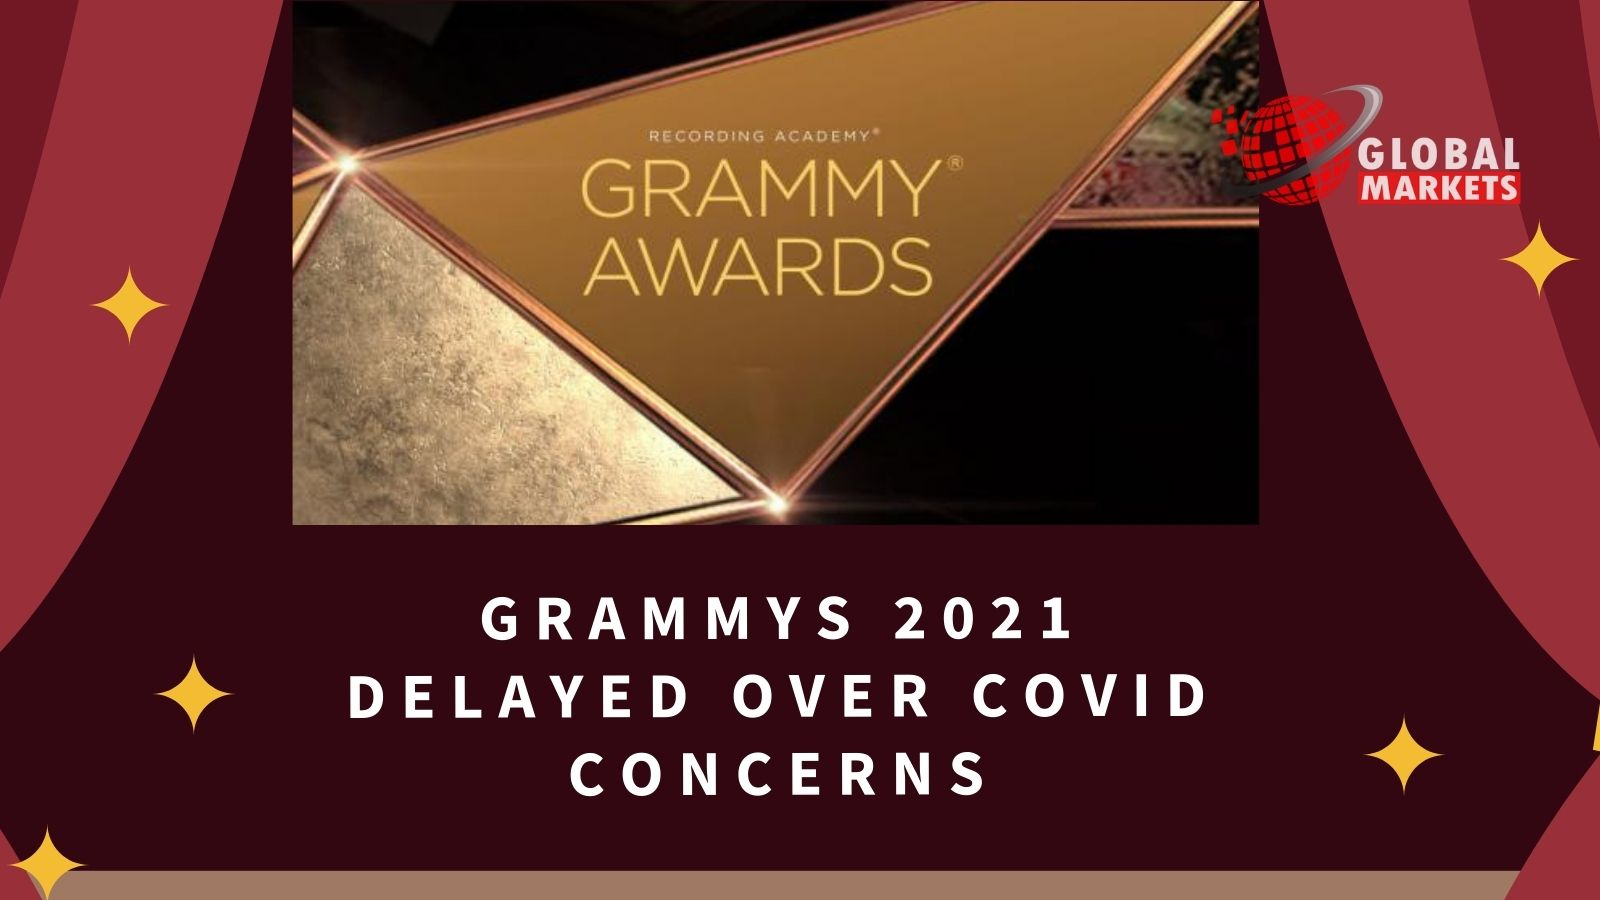 Grammys 2021 delayed over Covid concerns